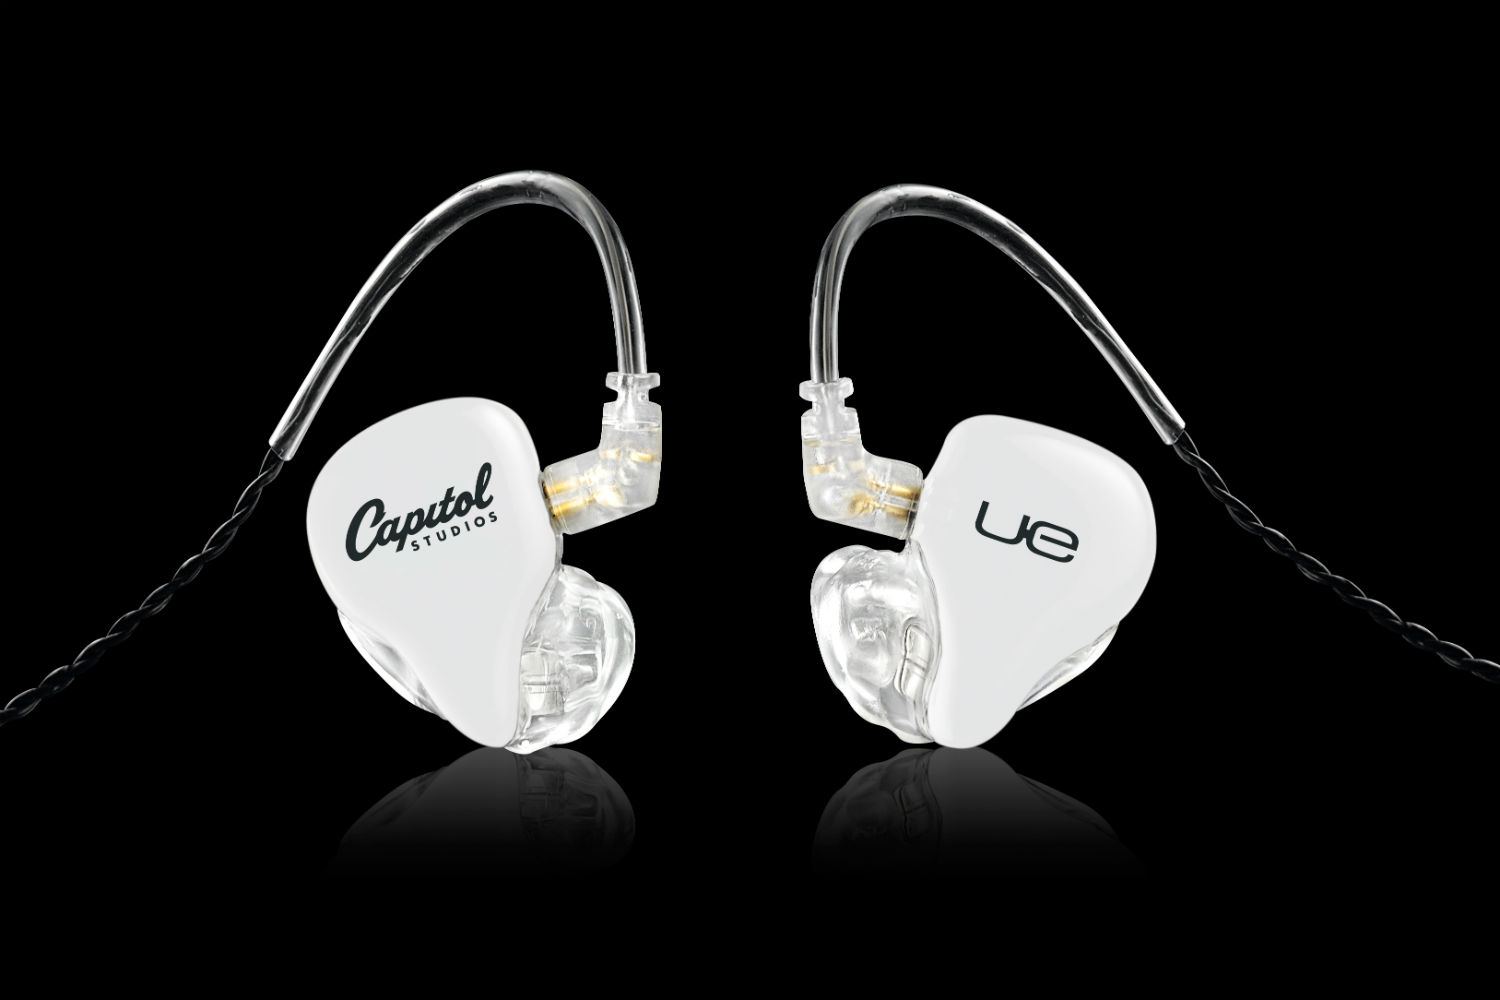 Ultimate Ears Pro perfects perfection with new Reference ...